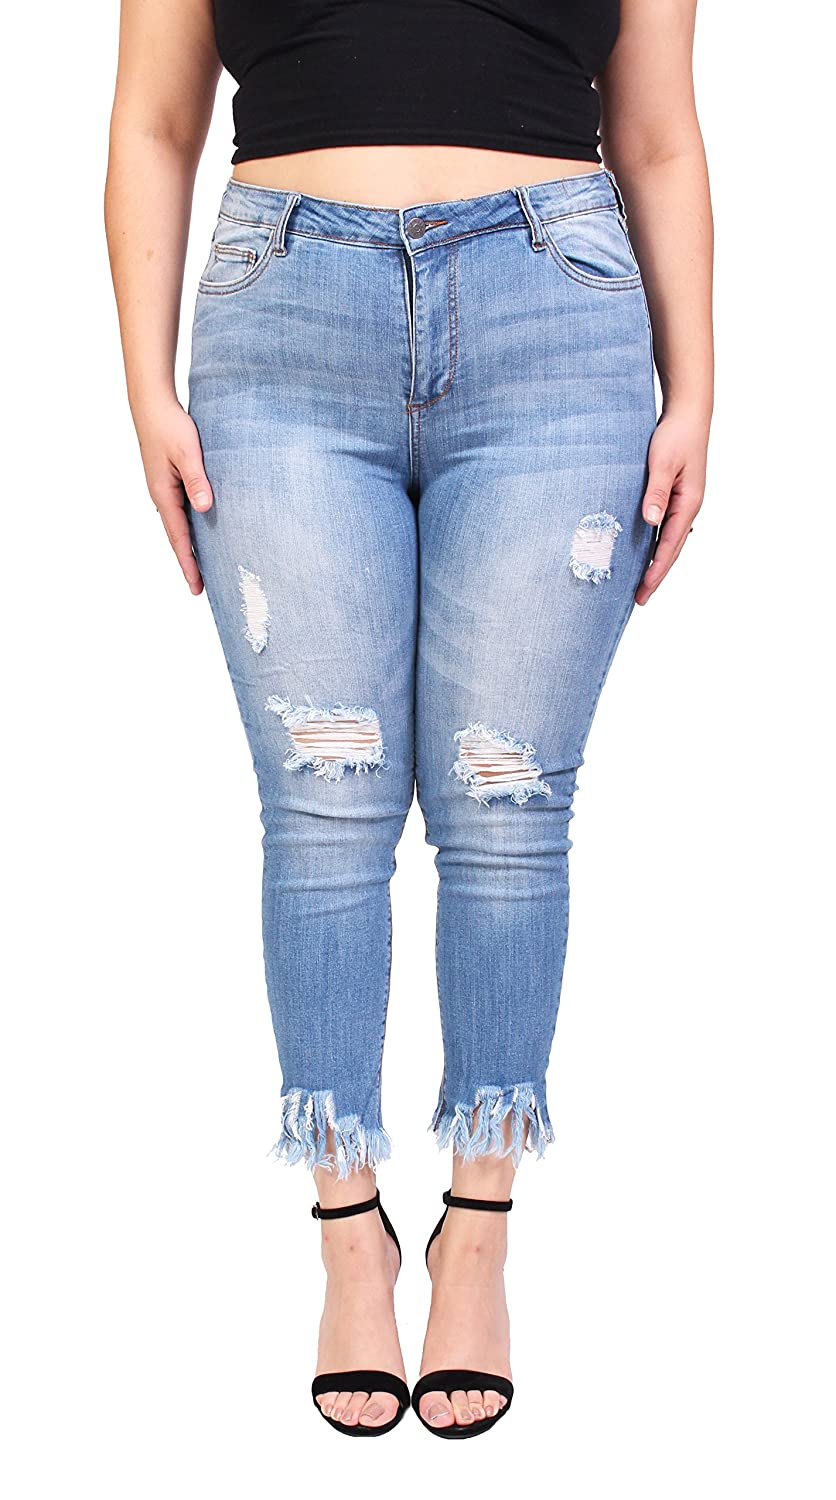 Cello Jeans Women Plus Size Middle Rise Distressed Cropped Skinny Jeans With Super Fray Hem